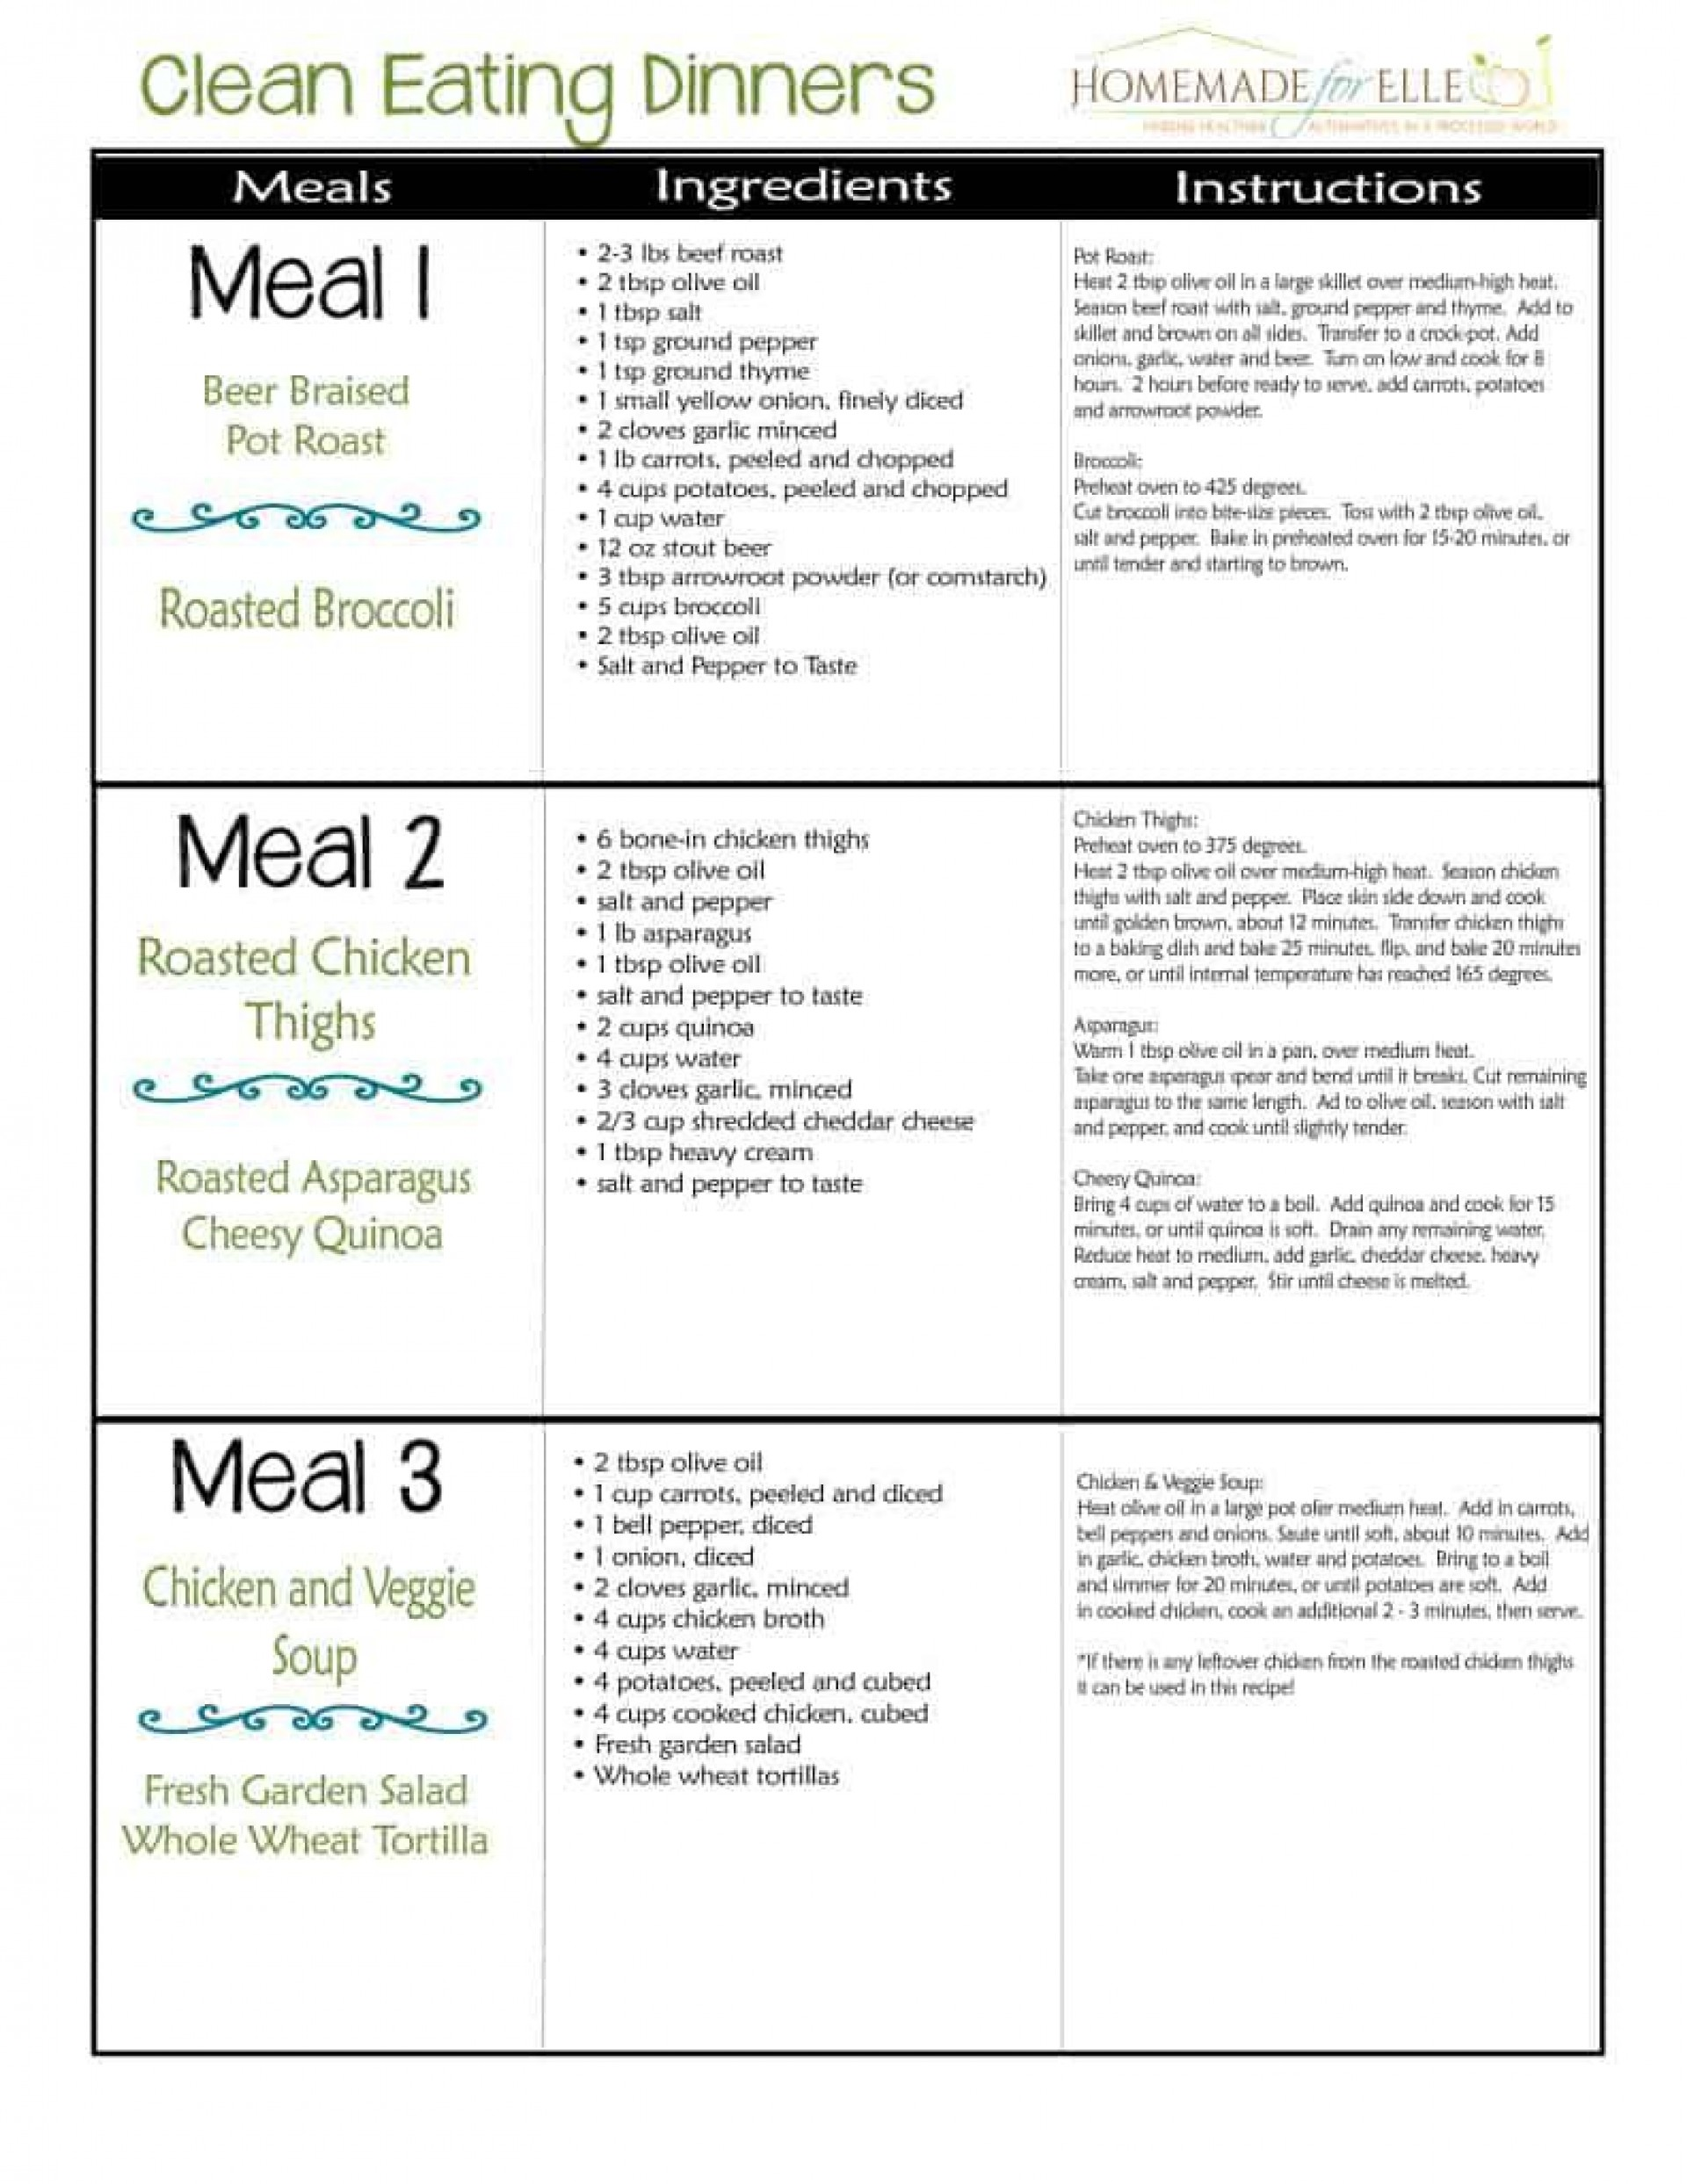 003 Unforgettable Weekly Meal Plan Example Image  Examples Keto One Week Template1920